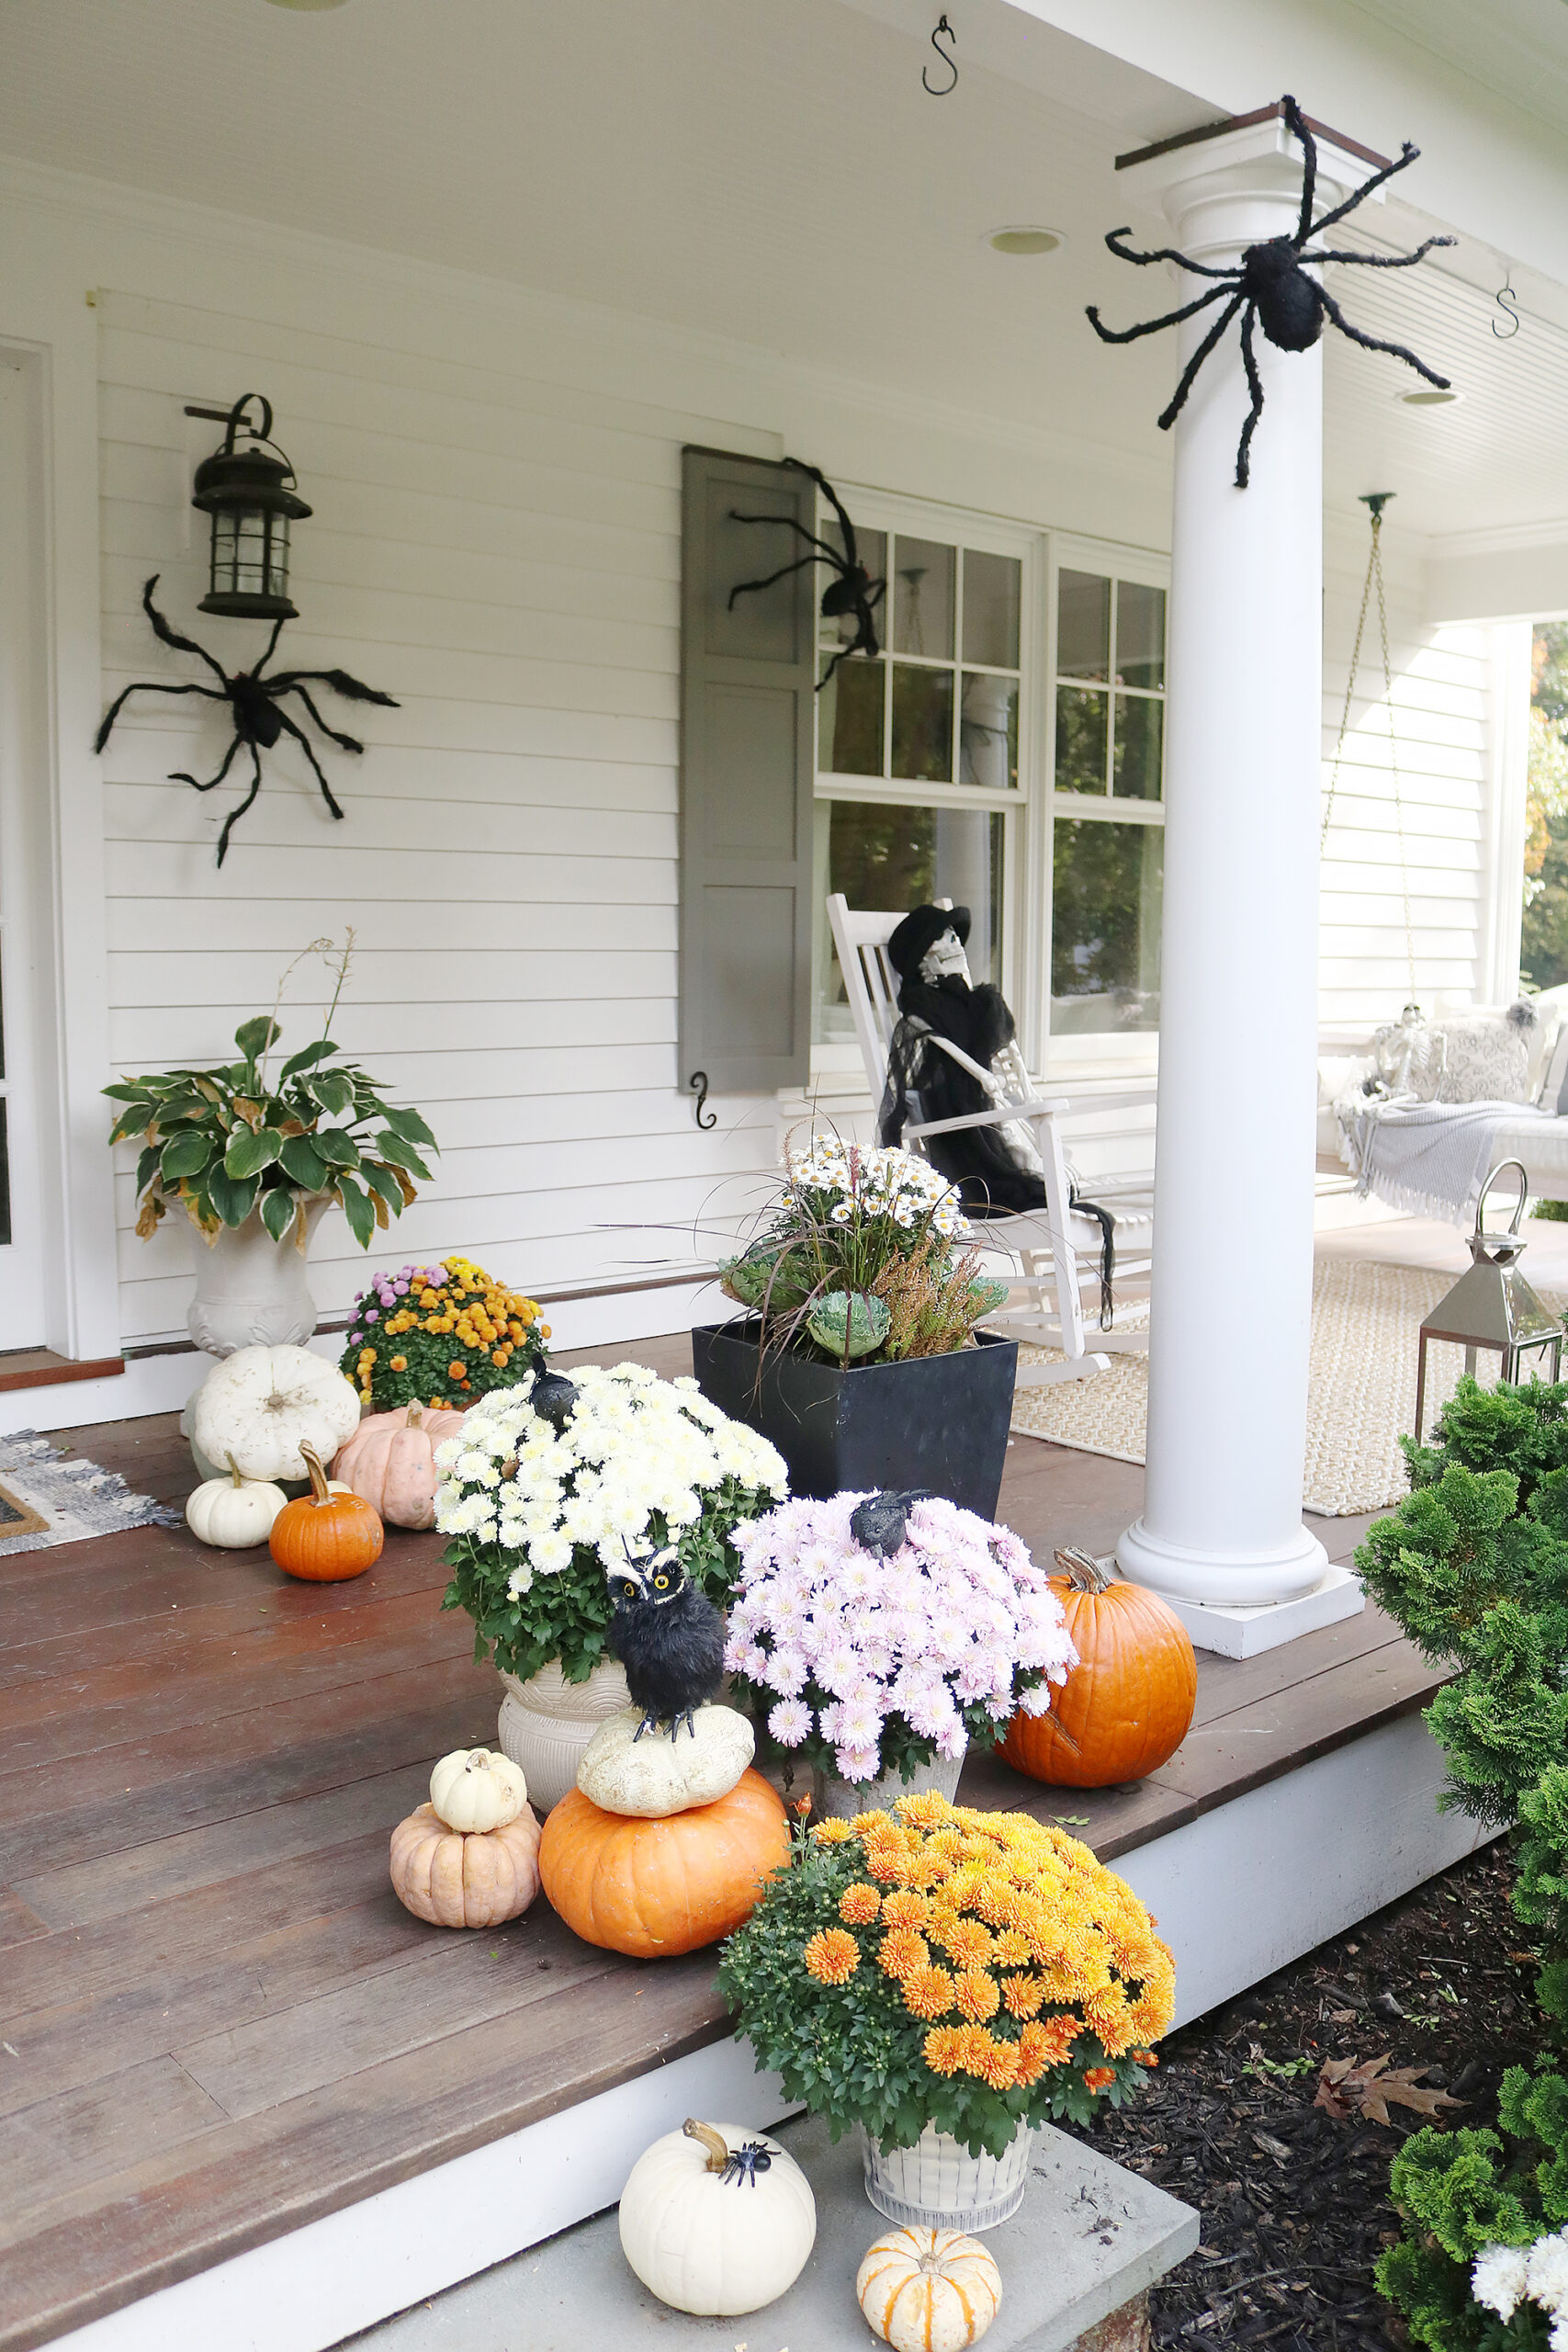 Our not-so-spooky front porch Halloween decorations with spiders and skeletons!  || Darling Darleen Top CT Lifestyle Blogger #halloweendecorations